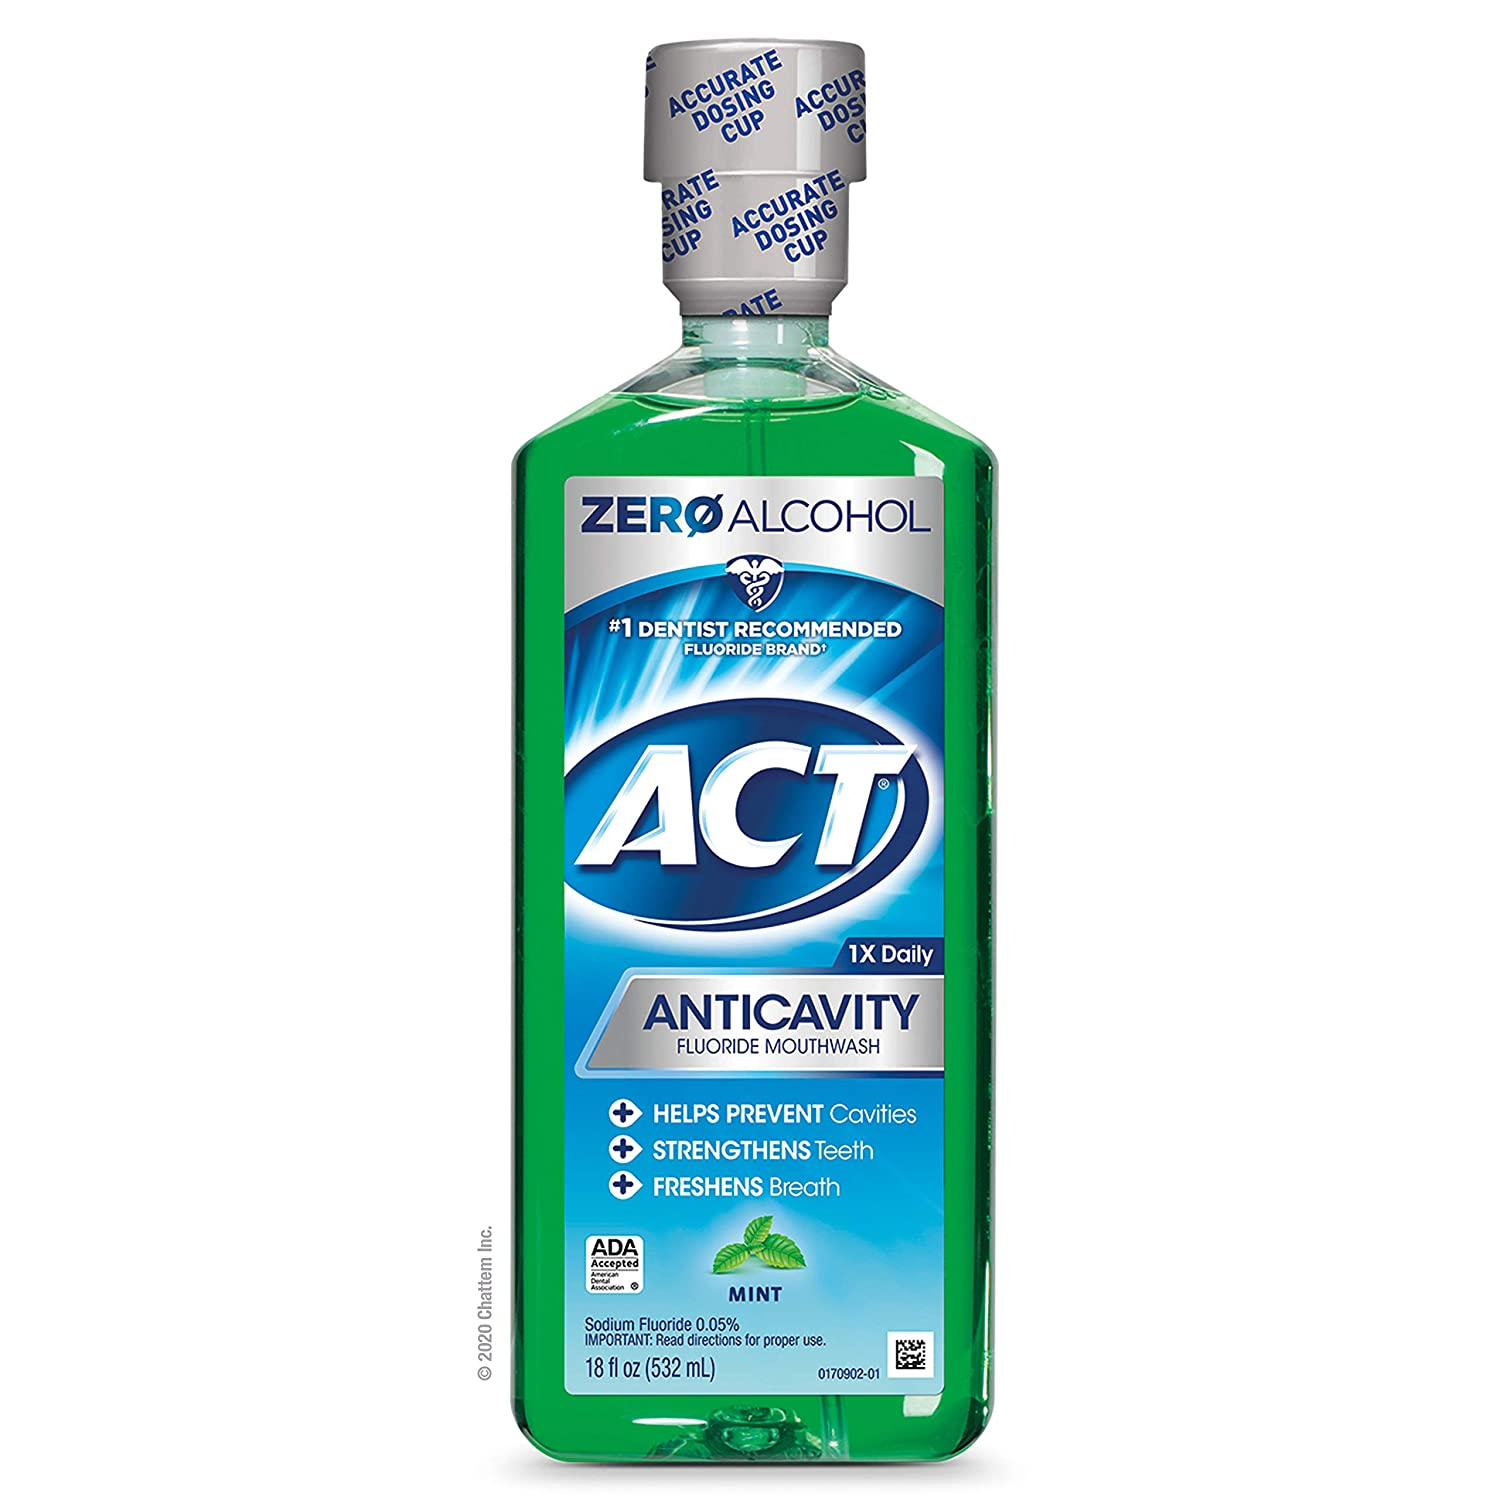 ACT Alcohol Free Anti-Cavity Fluoride Mouthwash Mint 18 oz Helps Prevent Cavities, Strengthen Tooth Enamel and Freshen Breath with Fluoride & Exact Dosage Meter